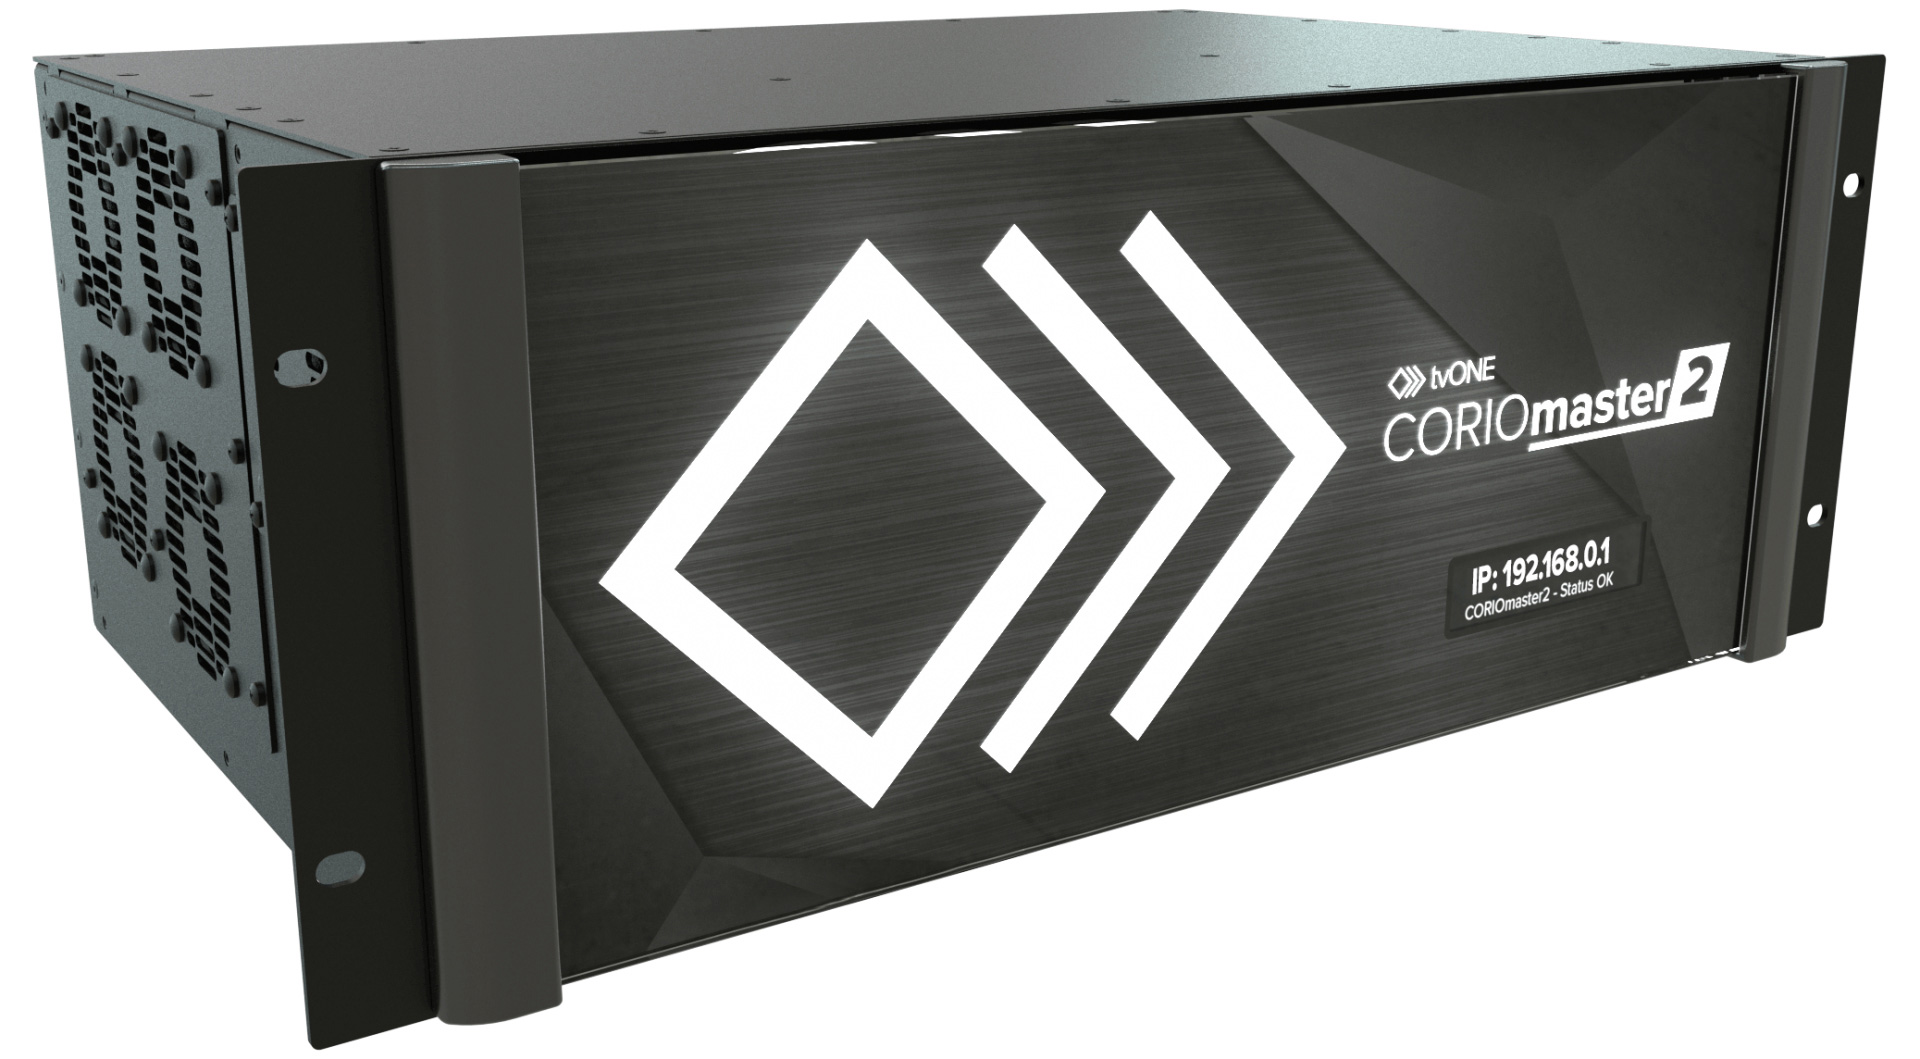 tvONE CM2-547 CORIOmaster2 High Bandwidth 4K/8K Video Processor System CM2-547